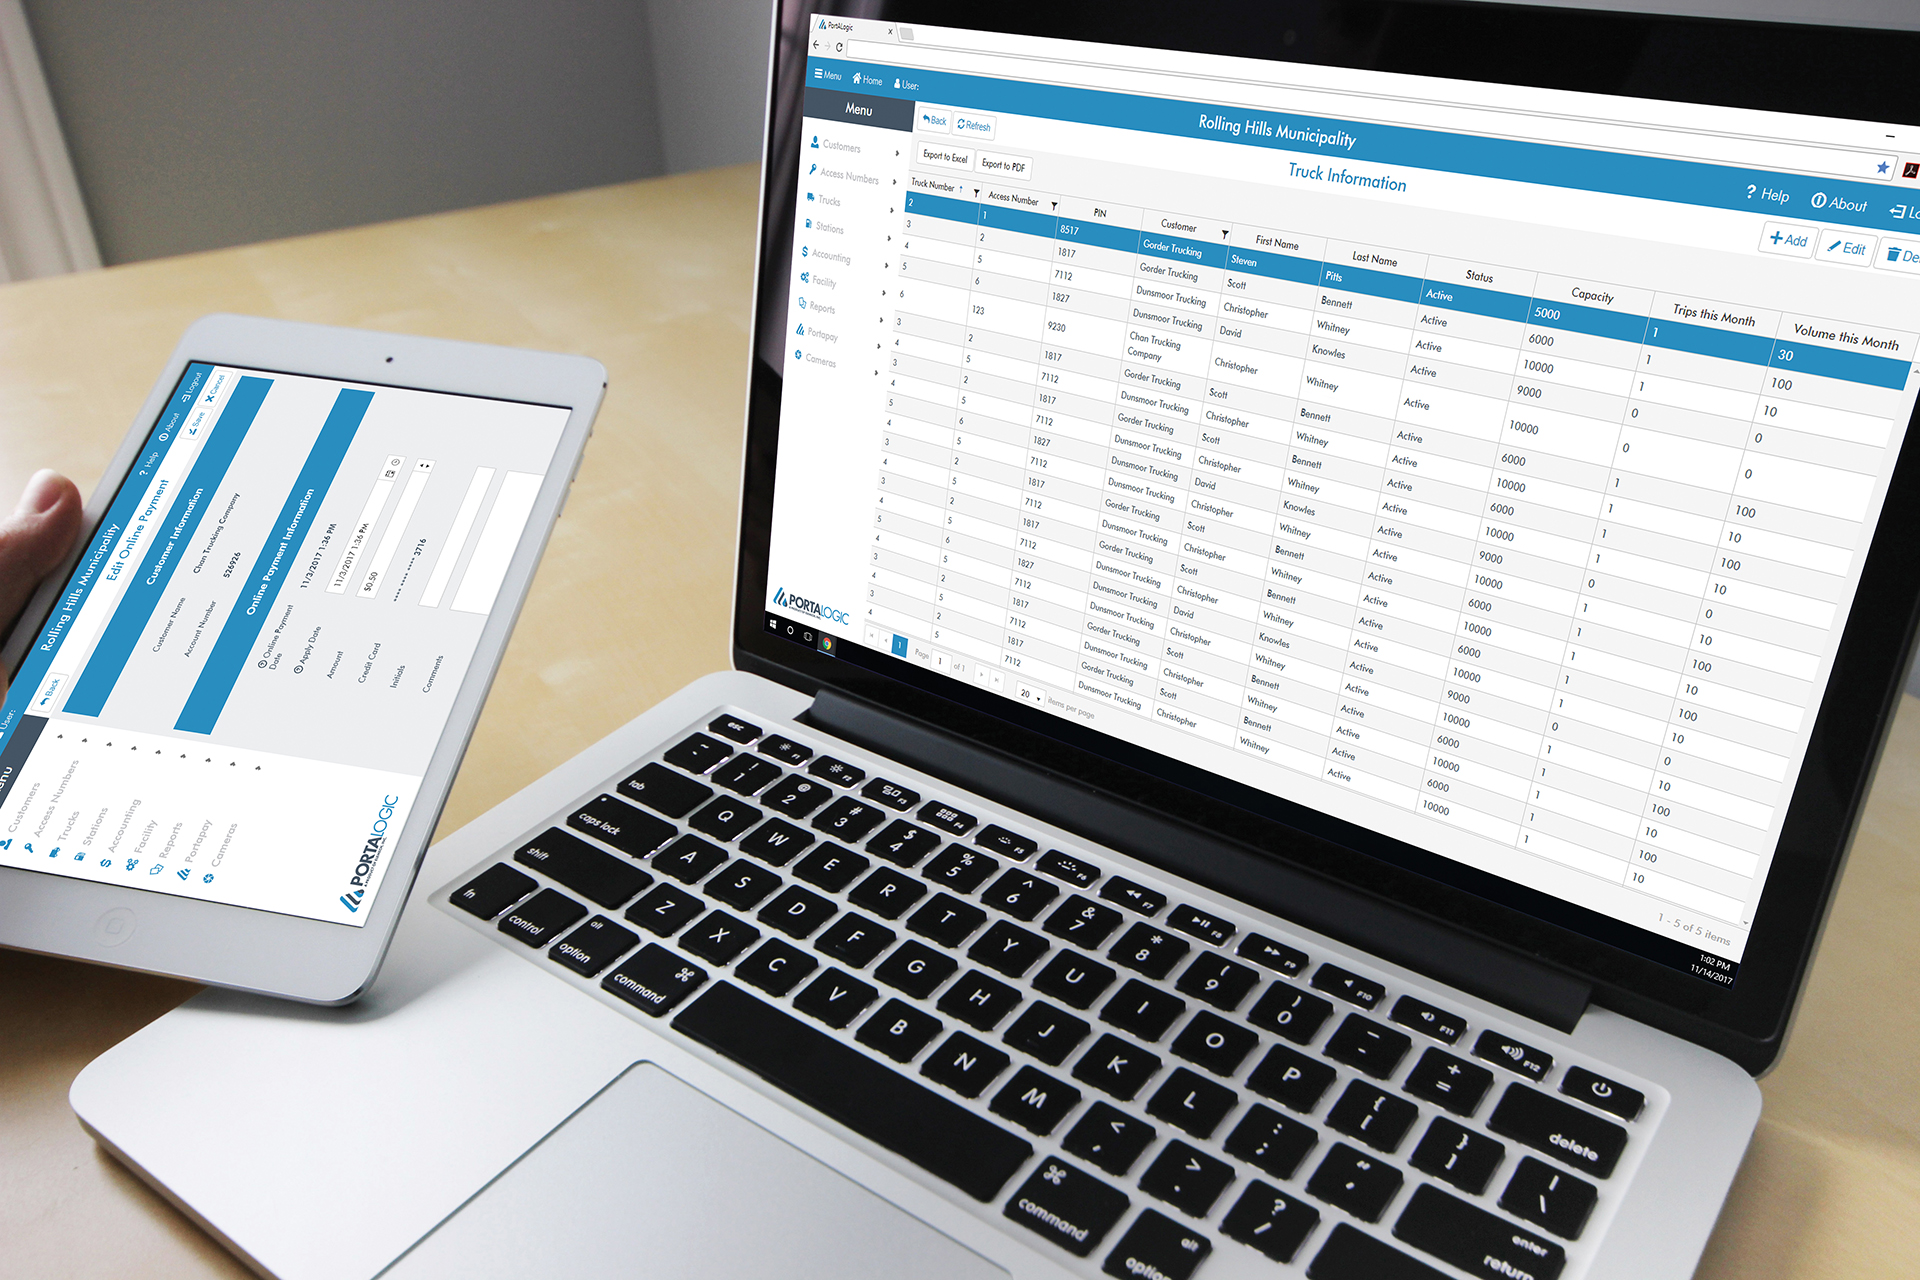 Portalogic management software can be viewed on both PC and tablet.